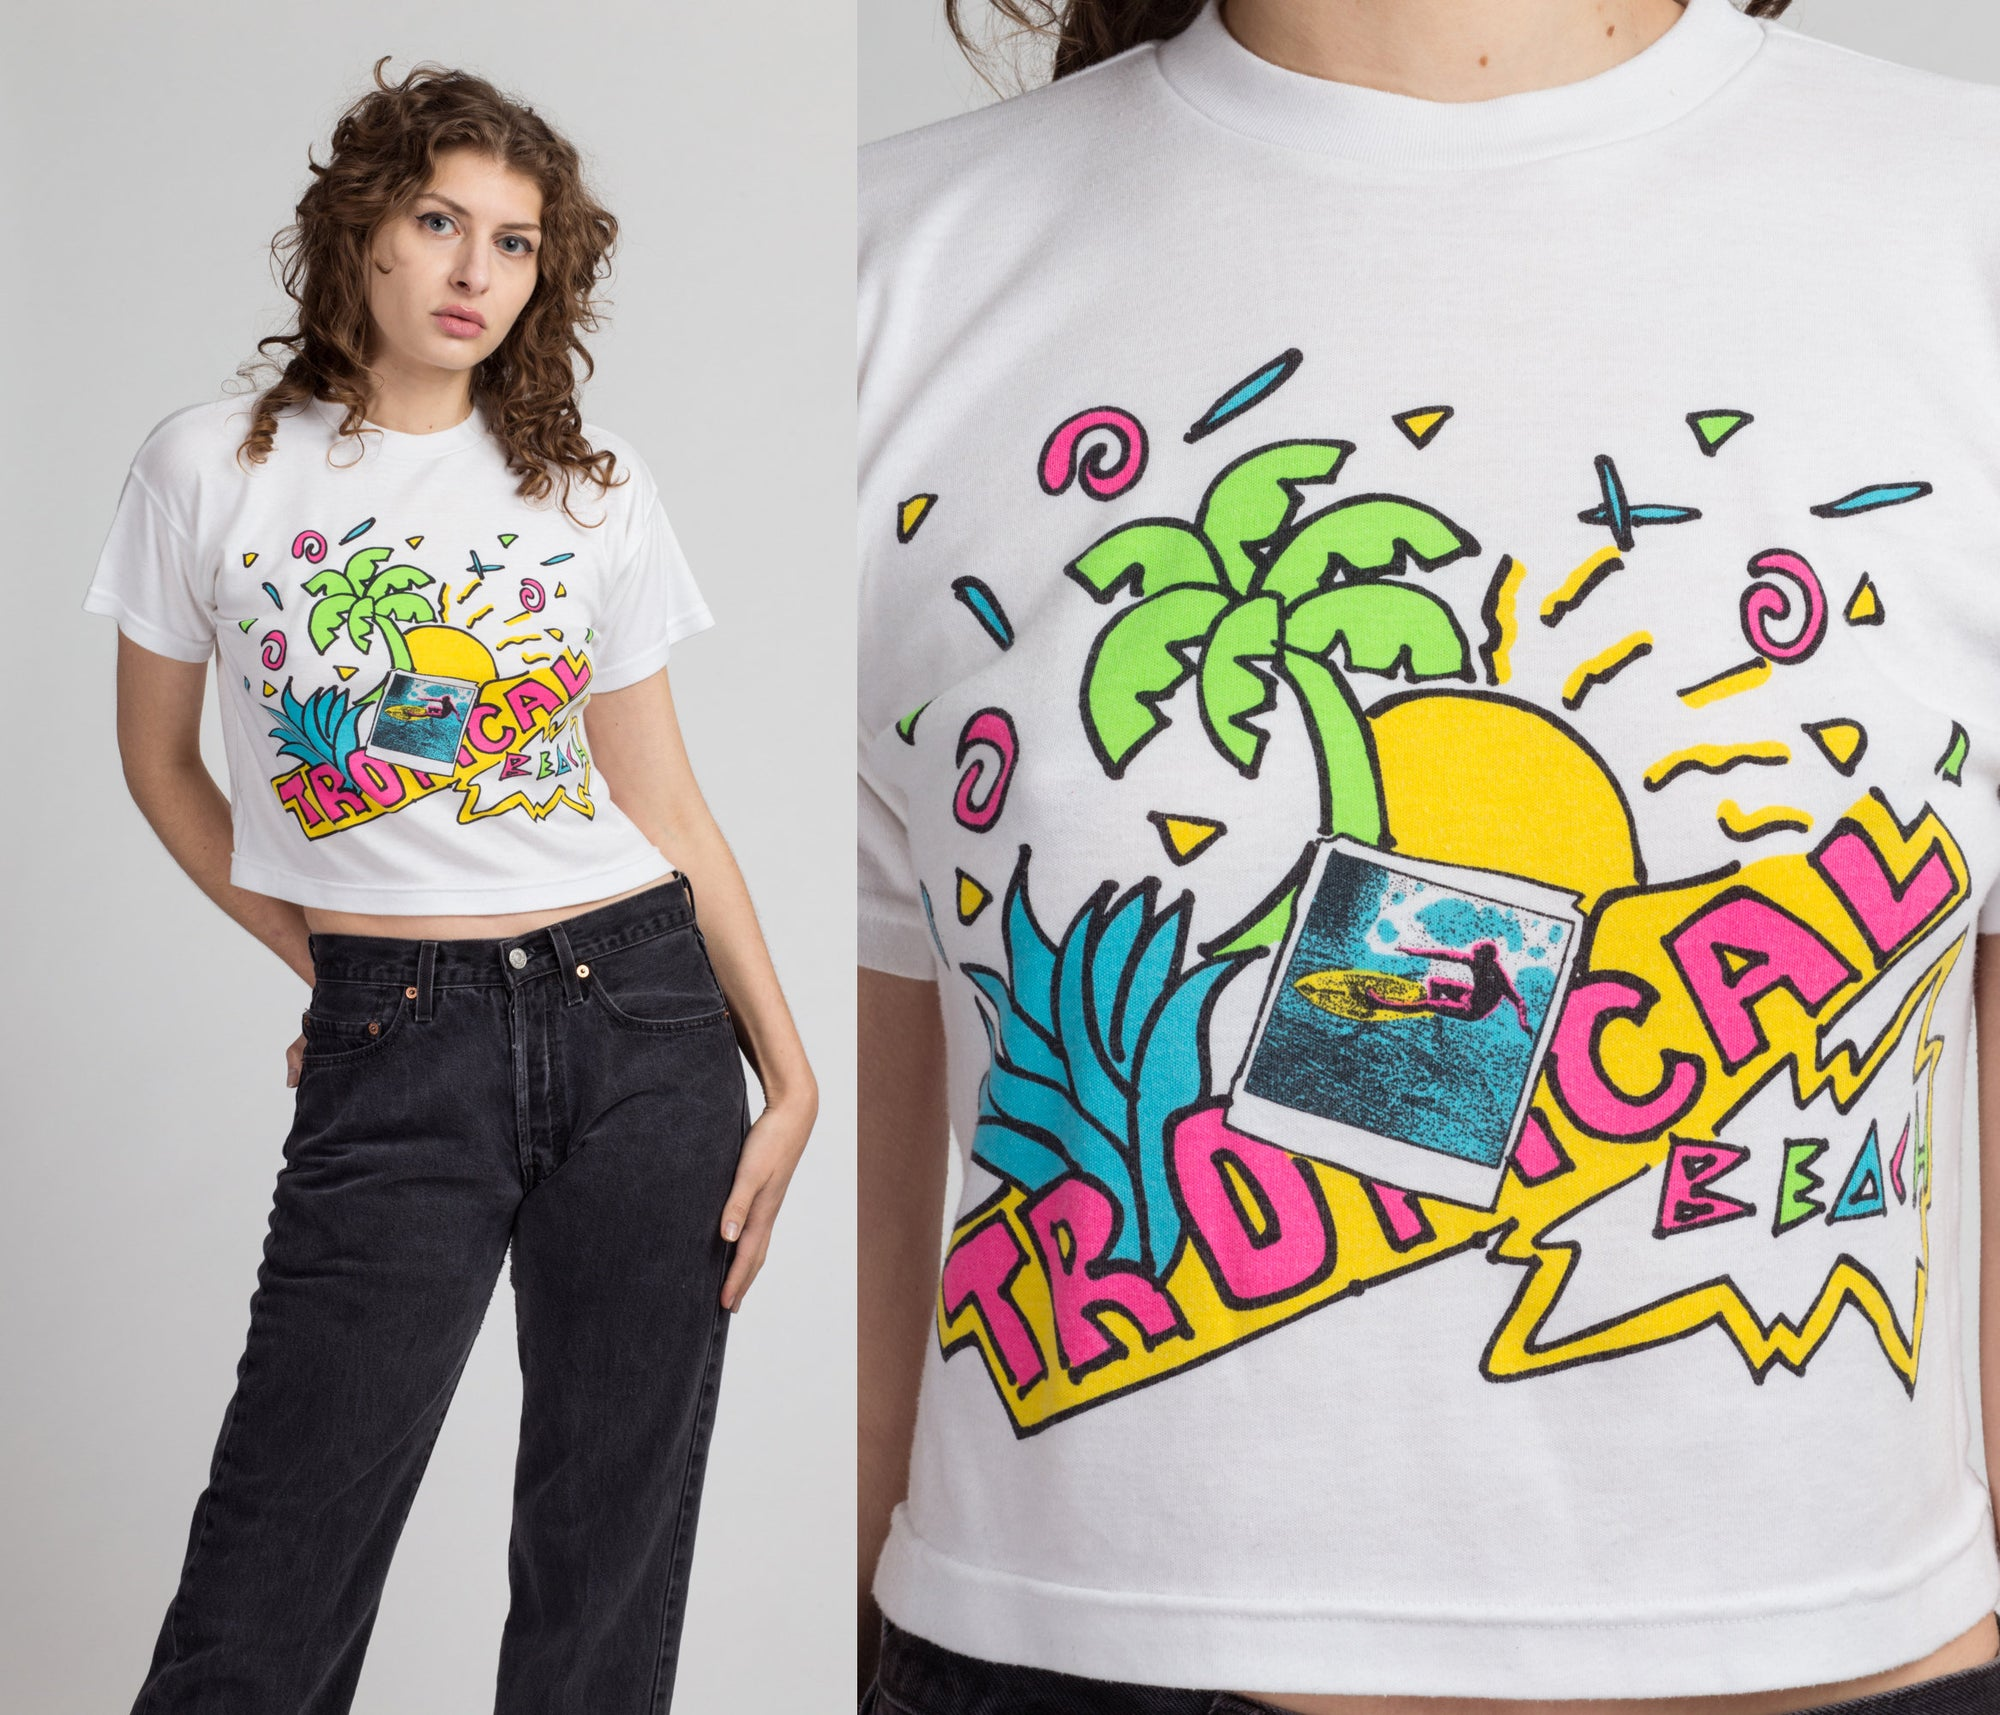 80s Tropical Beach Cropped T Shirt - Medium | Vintage White Vaporwave Graphic Crop Top Tee